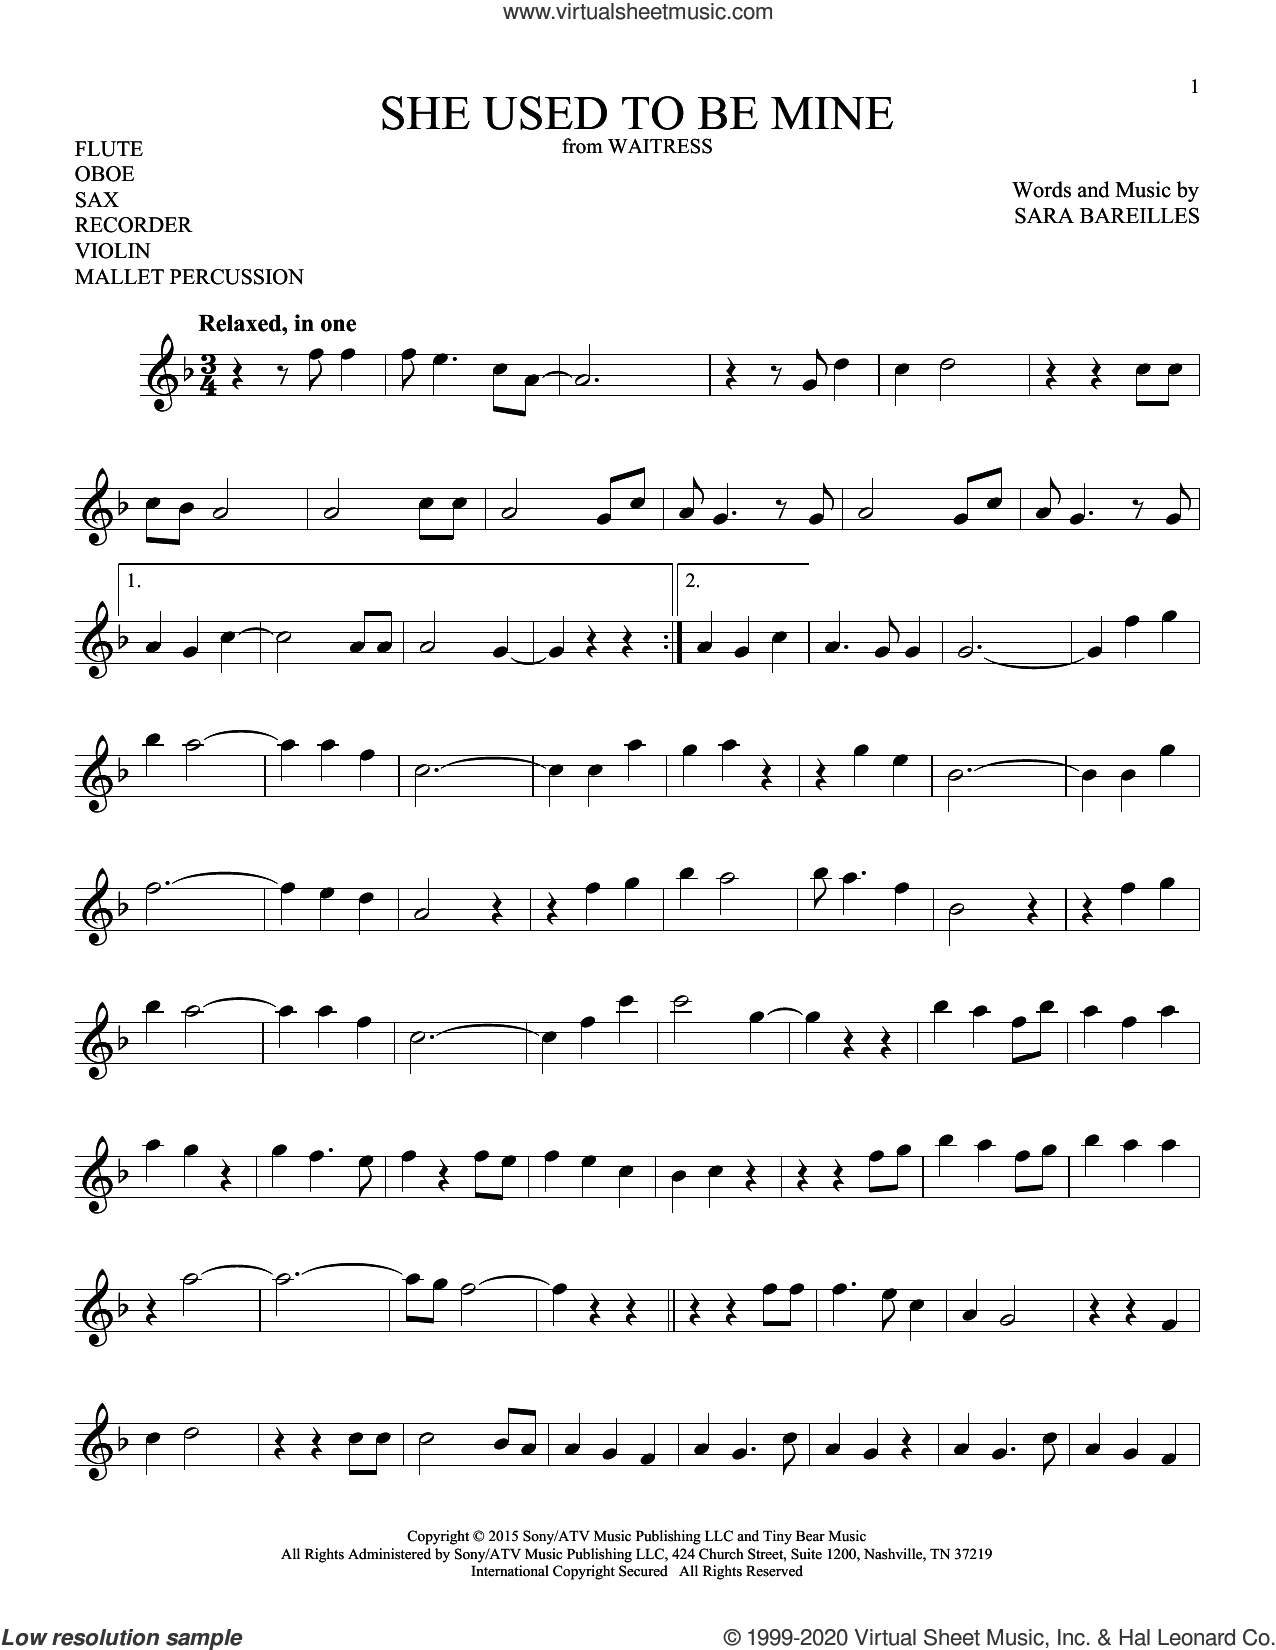 She Used To Be Mine (from Waitress) sheet music for Solo Instrument (treble clef high) by Sara Bareilles, intermediate skill level